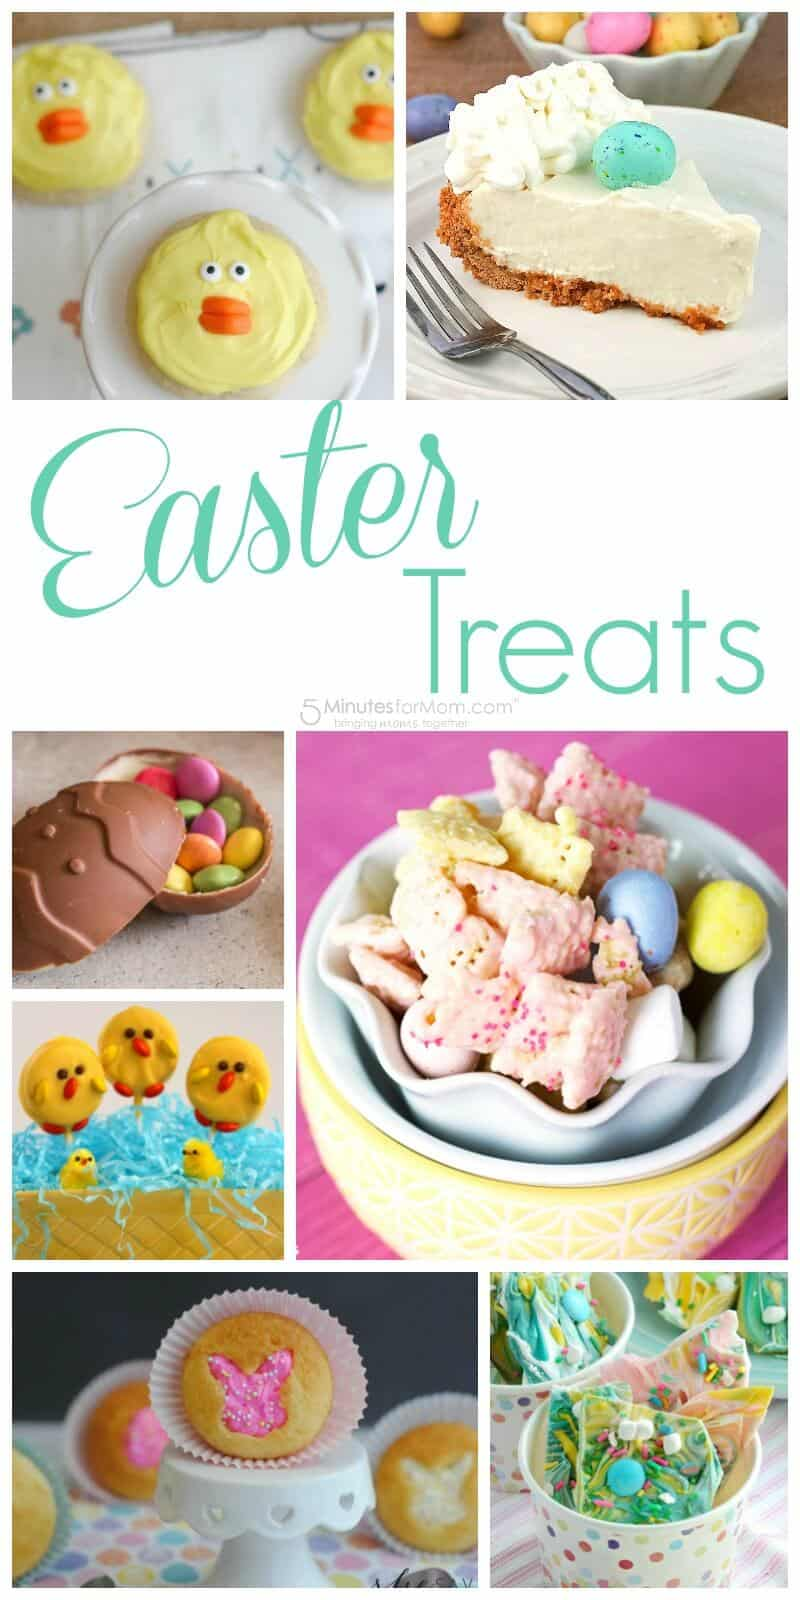 Tasty Easter Treats Your Family Will Love